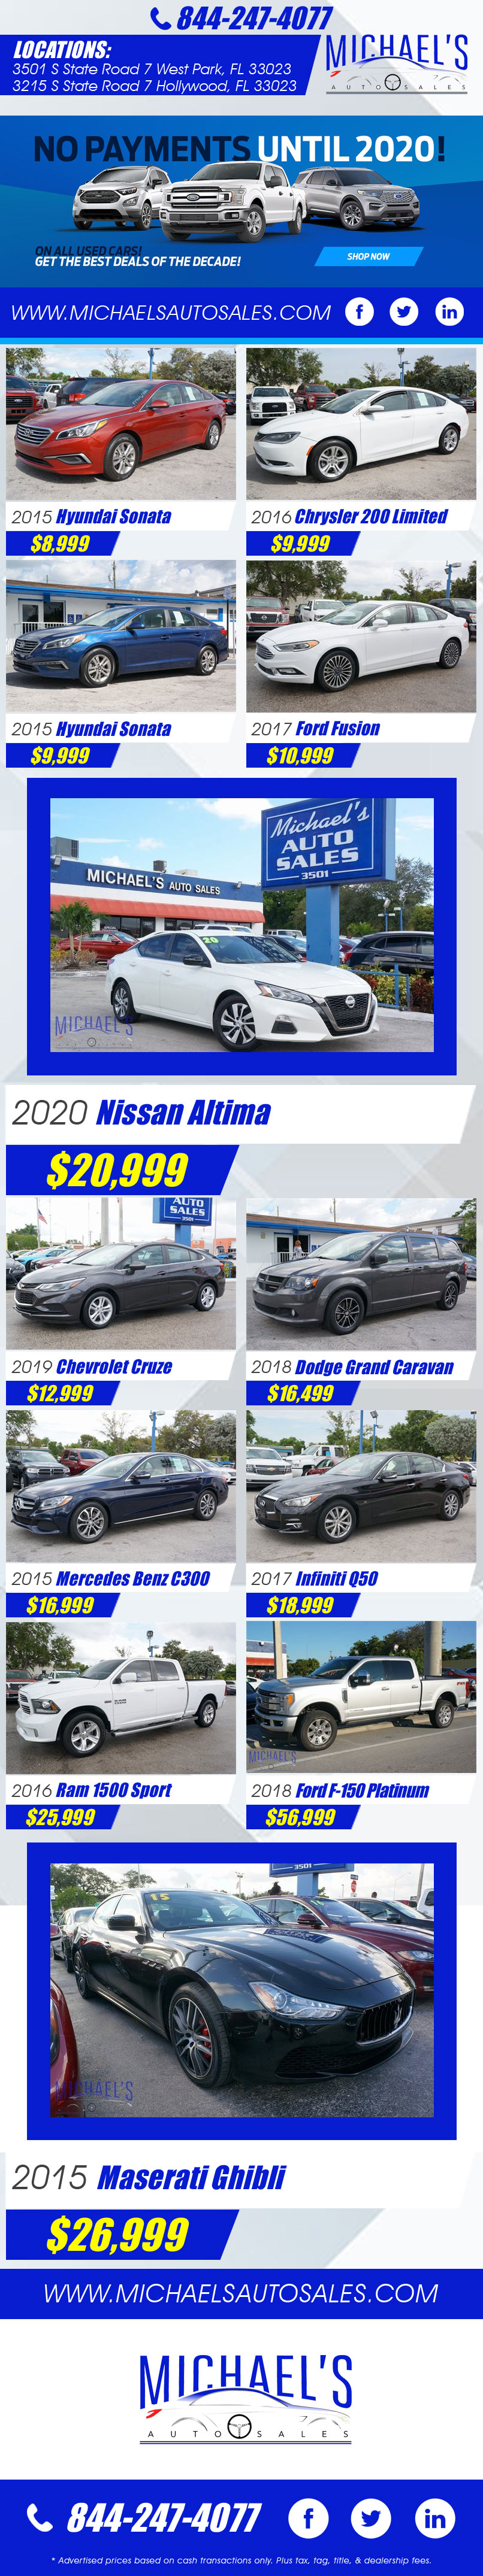 Visit us for our specials at Michael's Auto Sales